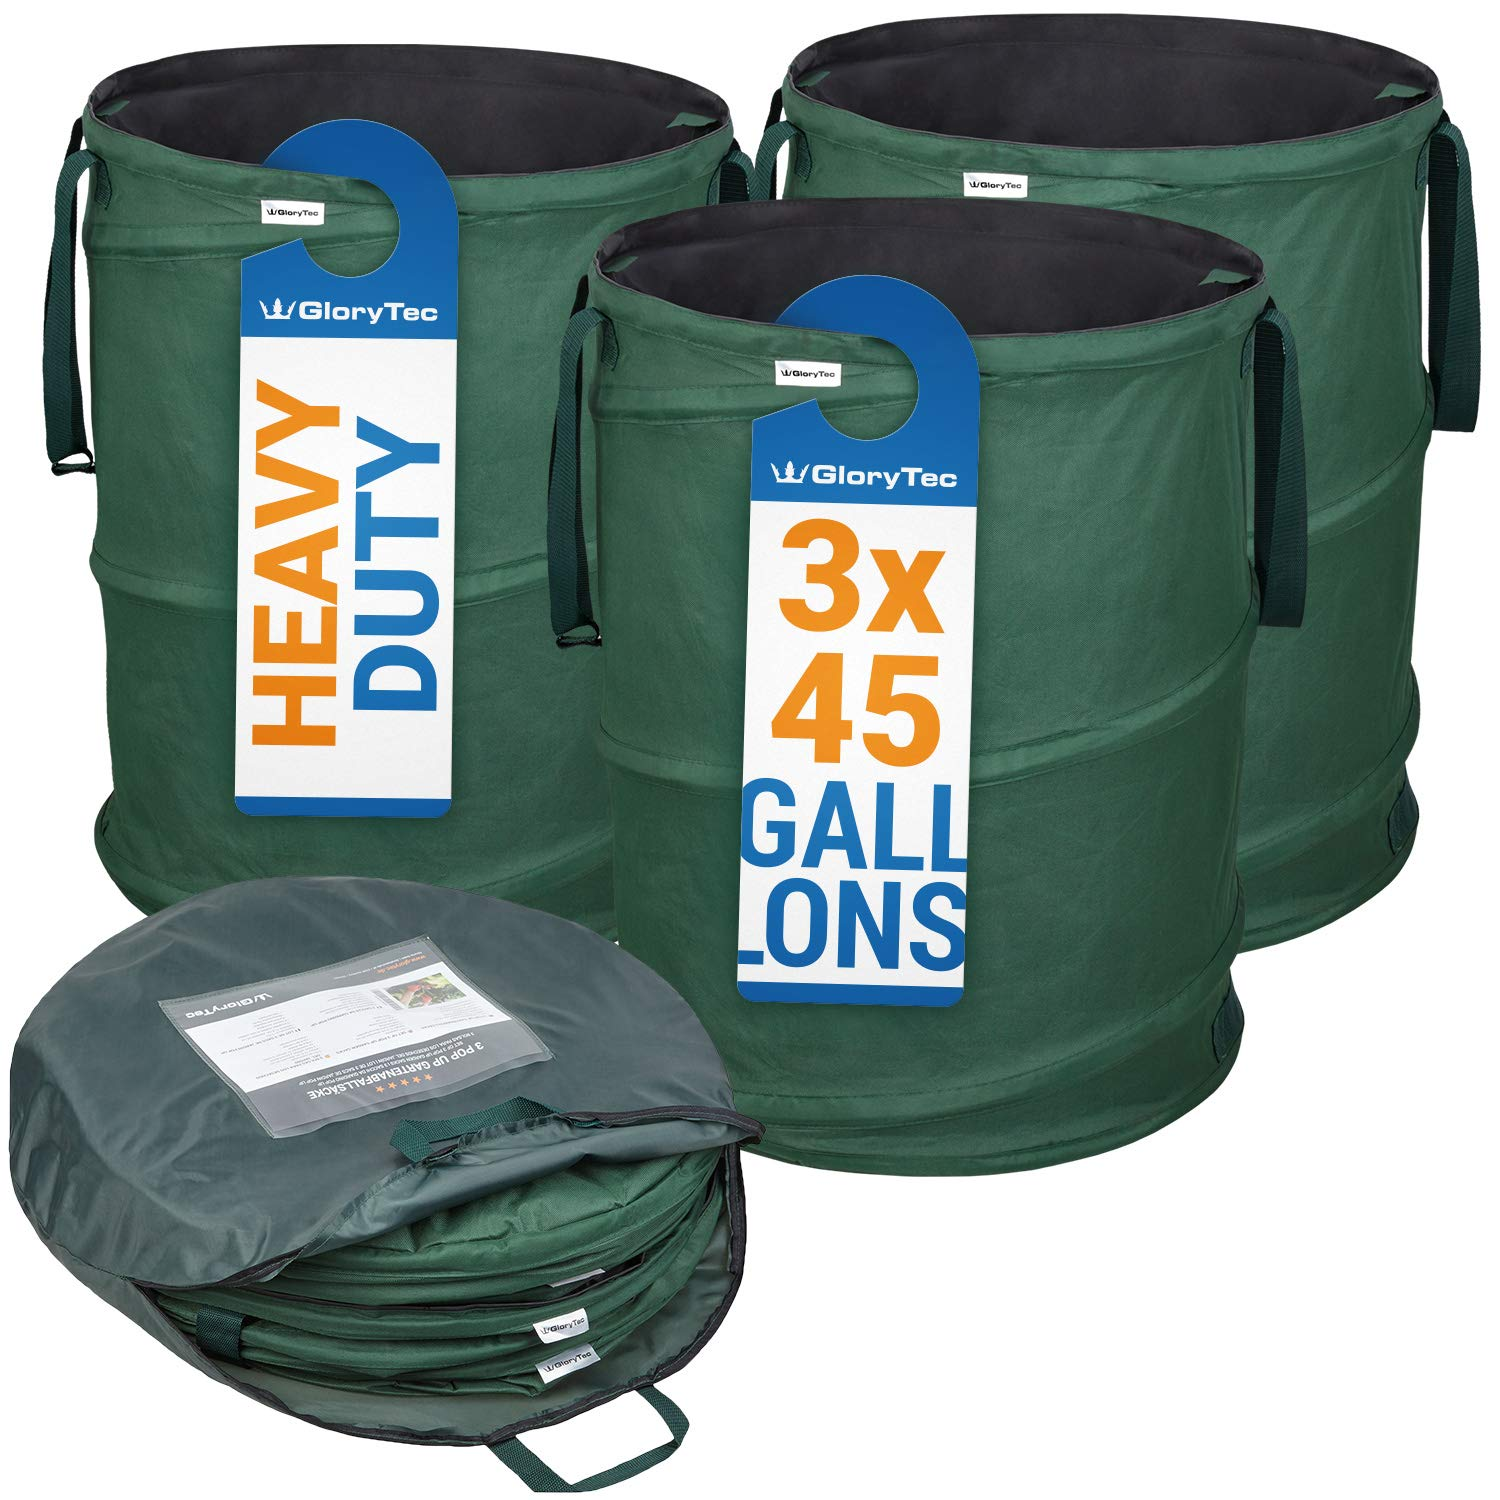 GloryTec 3-Pack Collapsible Garden Bag 45 Gallons Each - Heavy-Duty Gardening Container - Comparative-Winner 2018 - Reusable Trash Can for Leaf, Lawn and Yard Waste - Premium Bagster by Glorytec